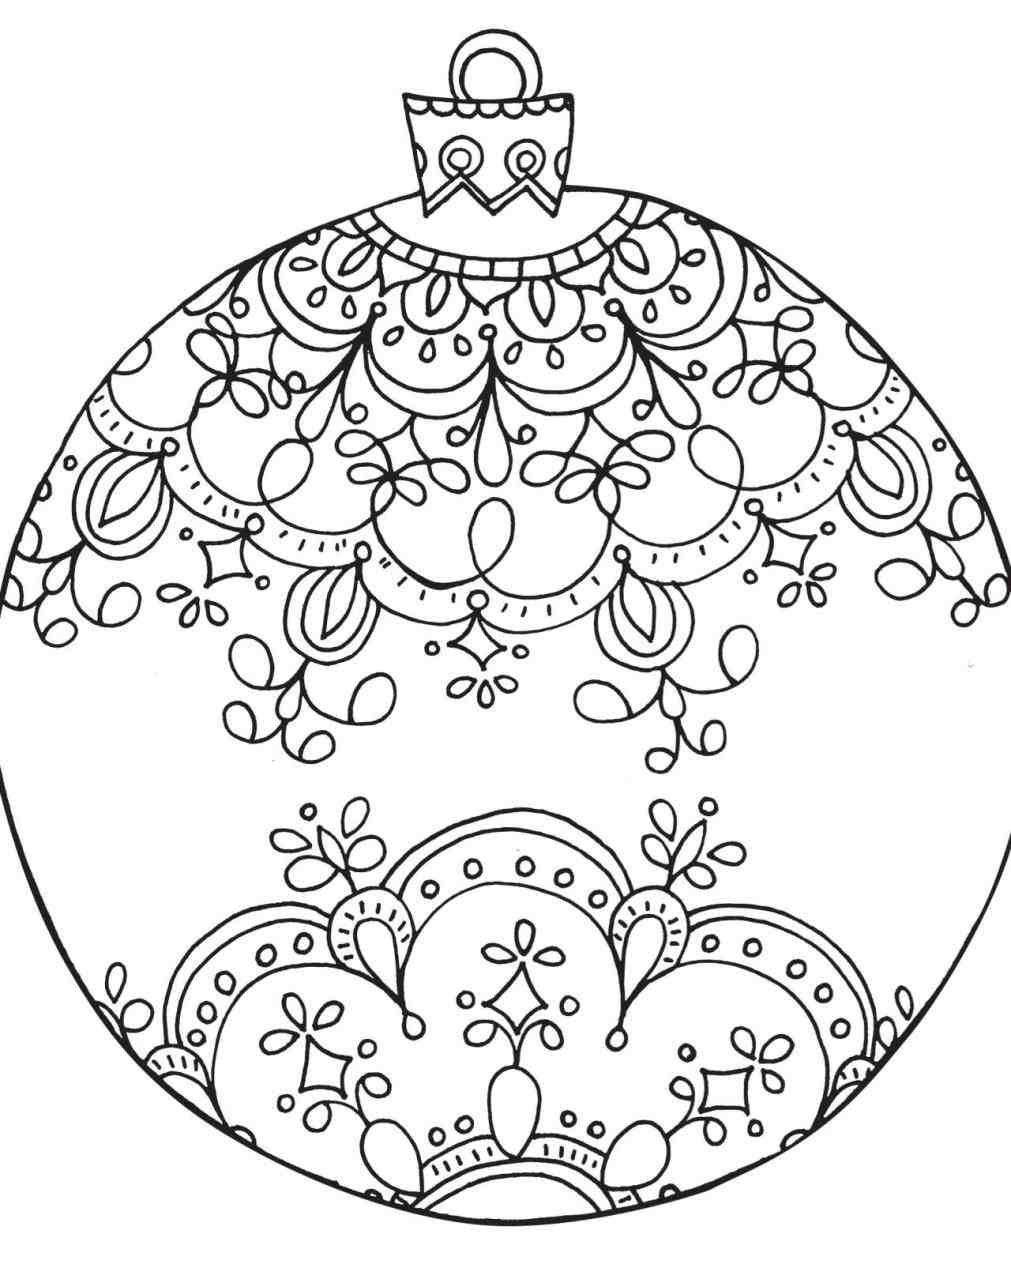 spongebob printable coloring pages - christmas balls coloring pages